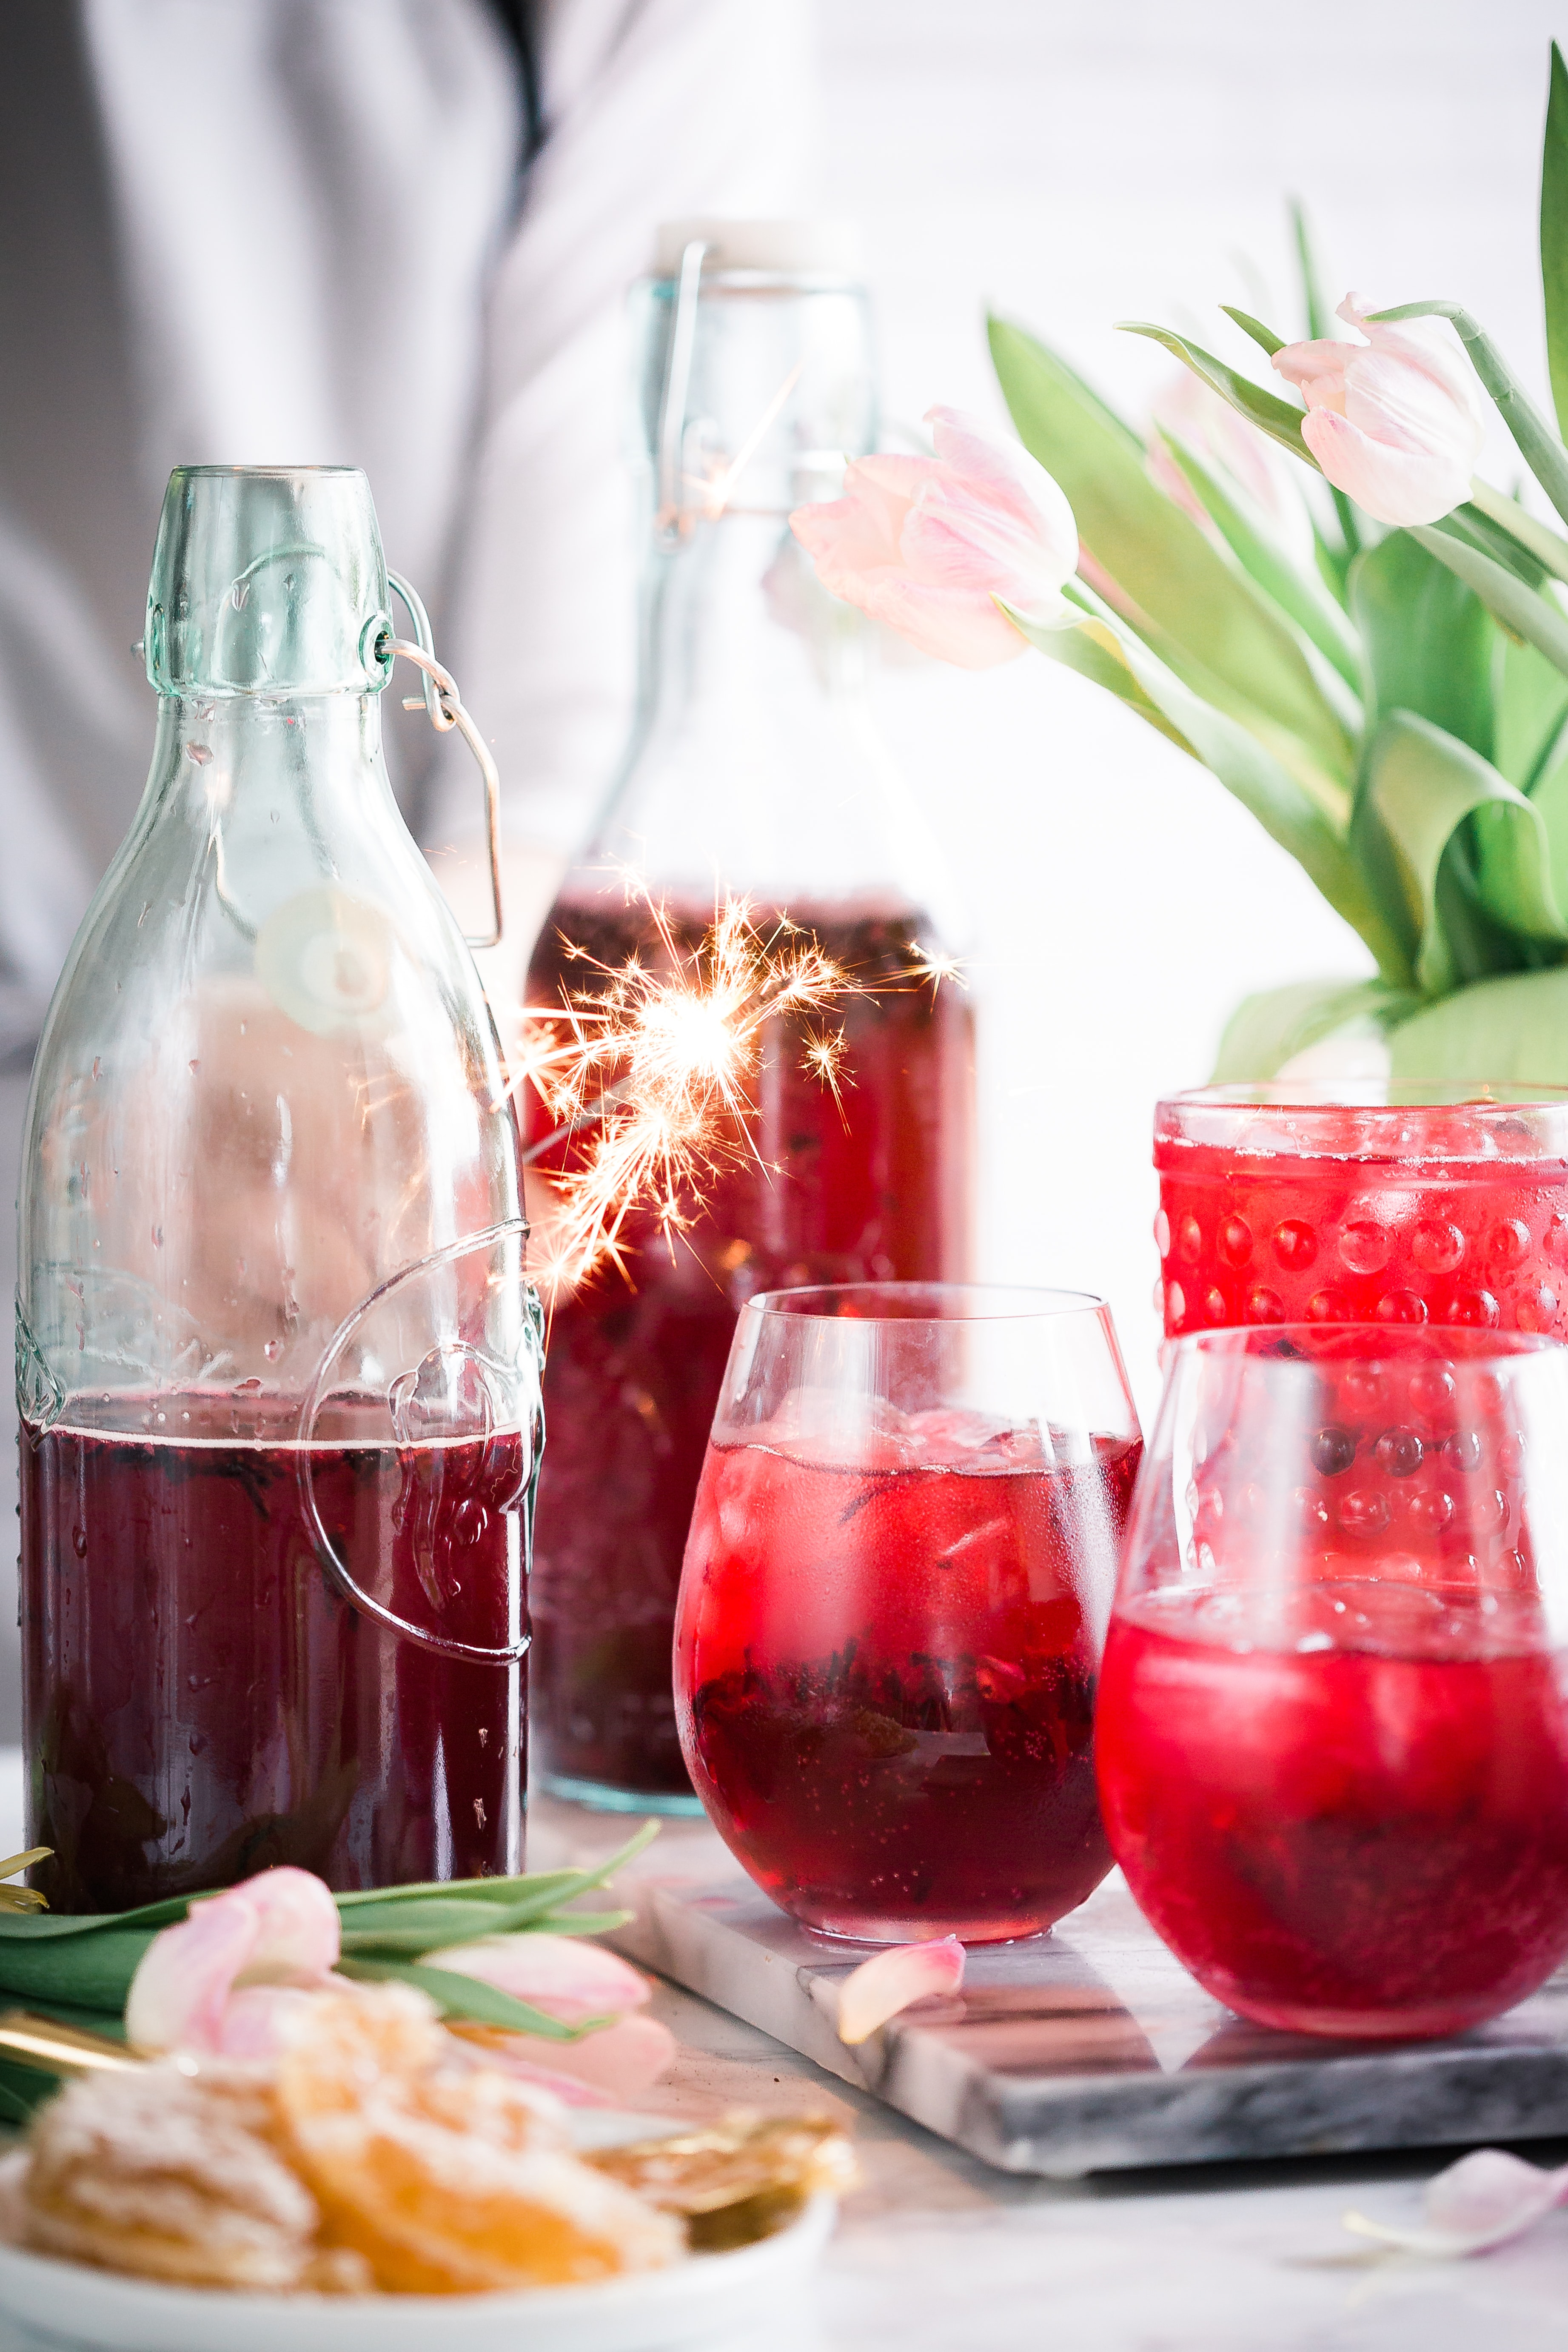 Bottles and glasses with a red beverage next to flowers and a platter of citruses on a tabletop